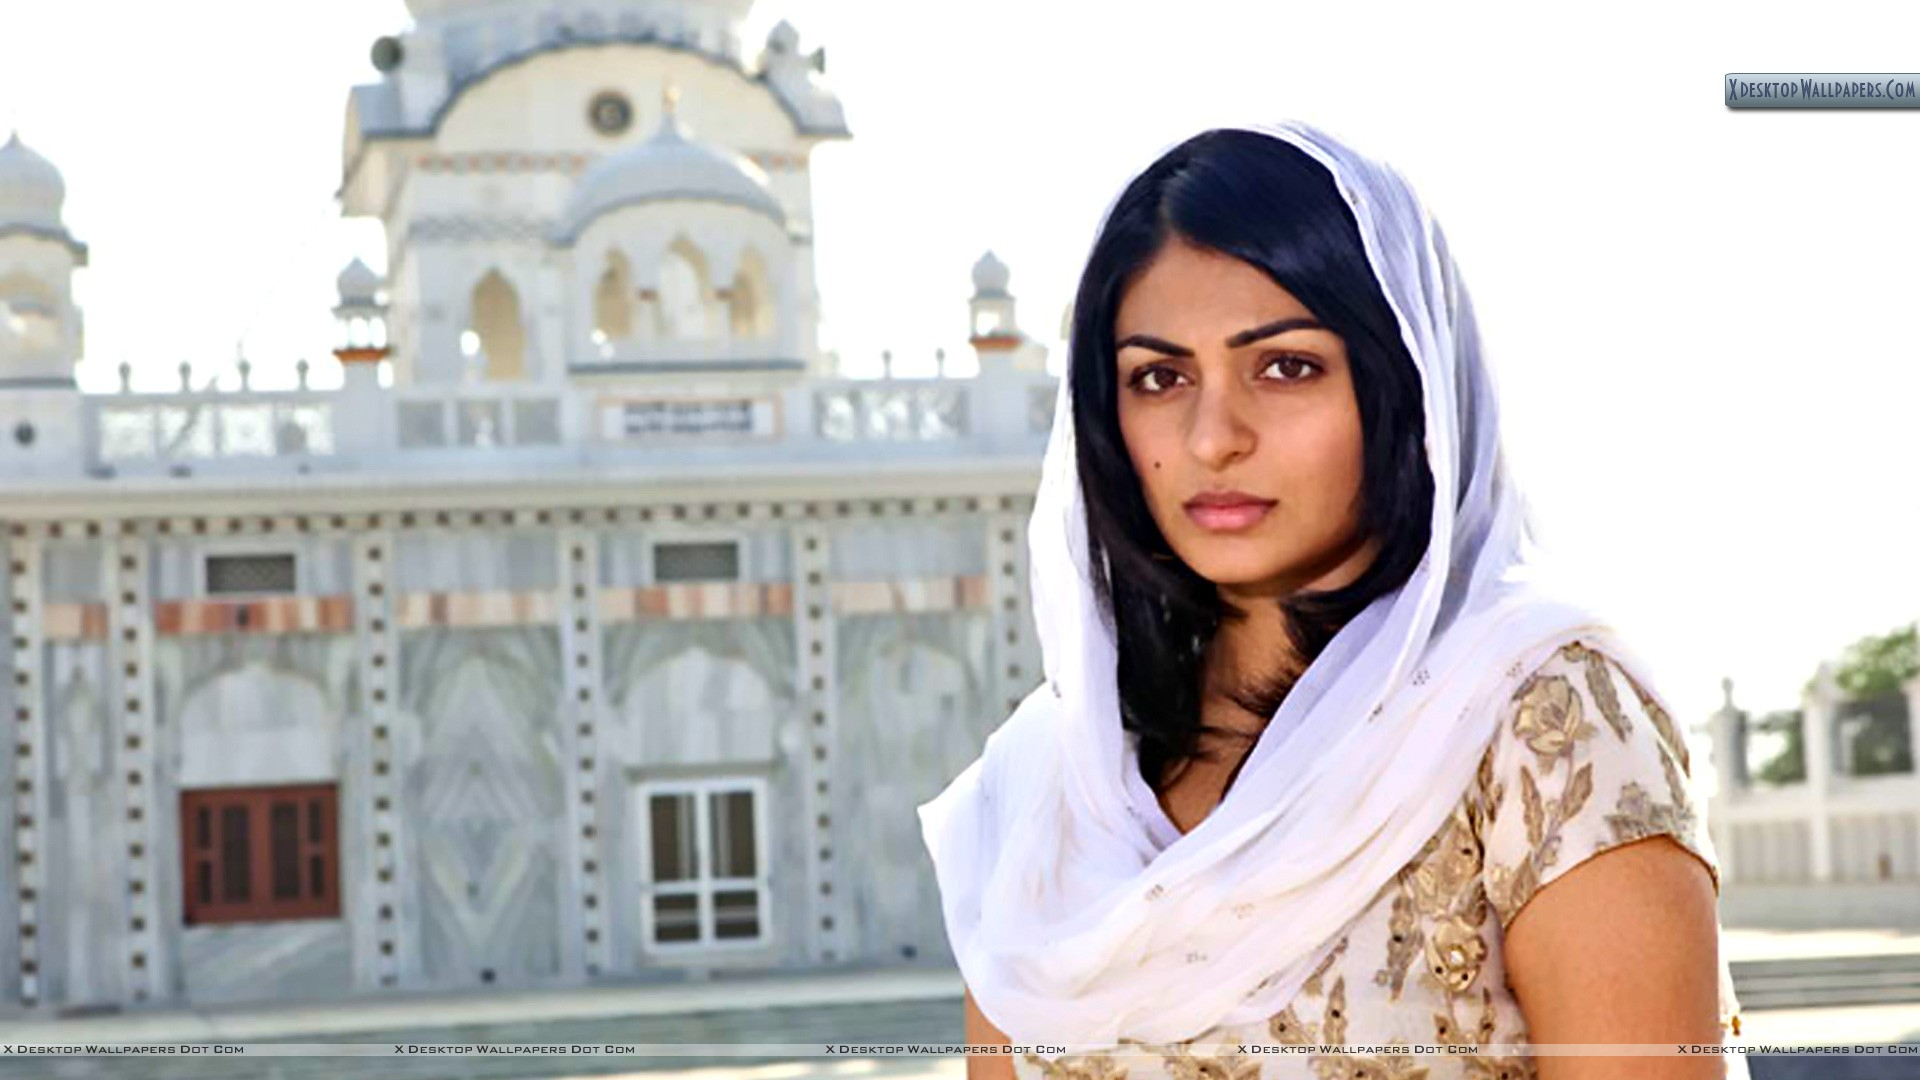 Neeru Bajwa Wallpaper Download